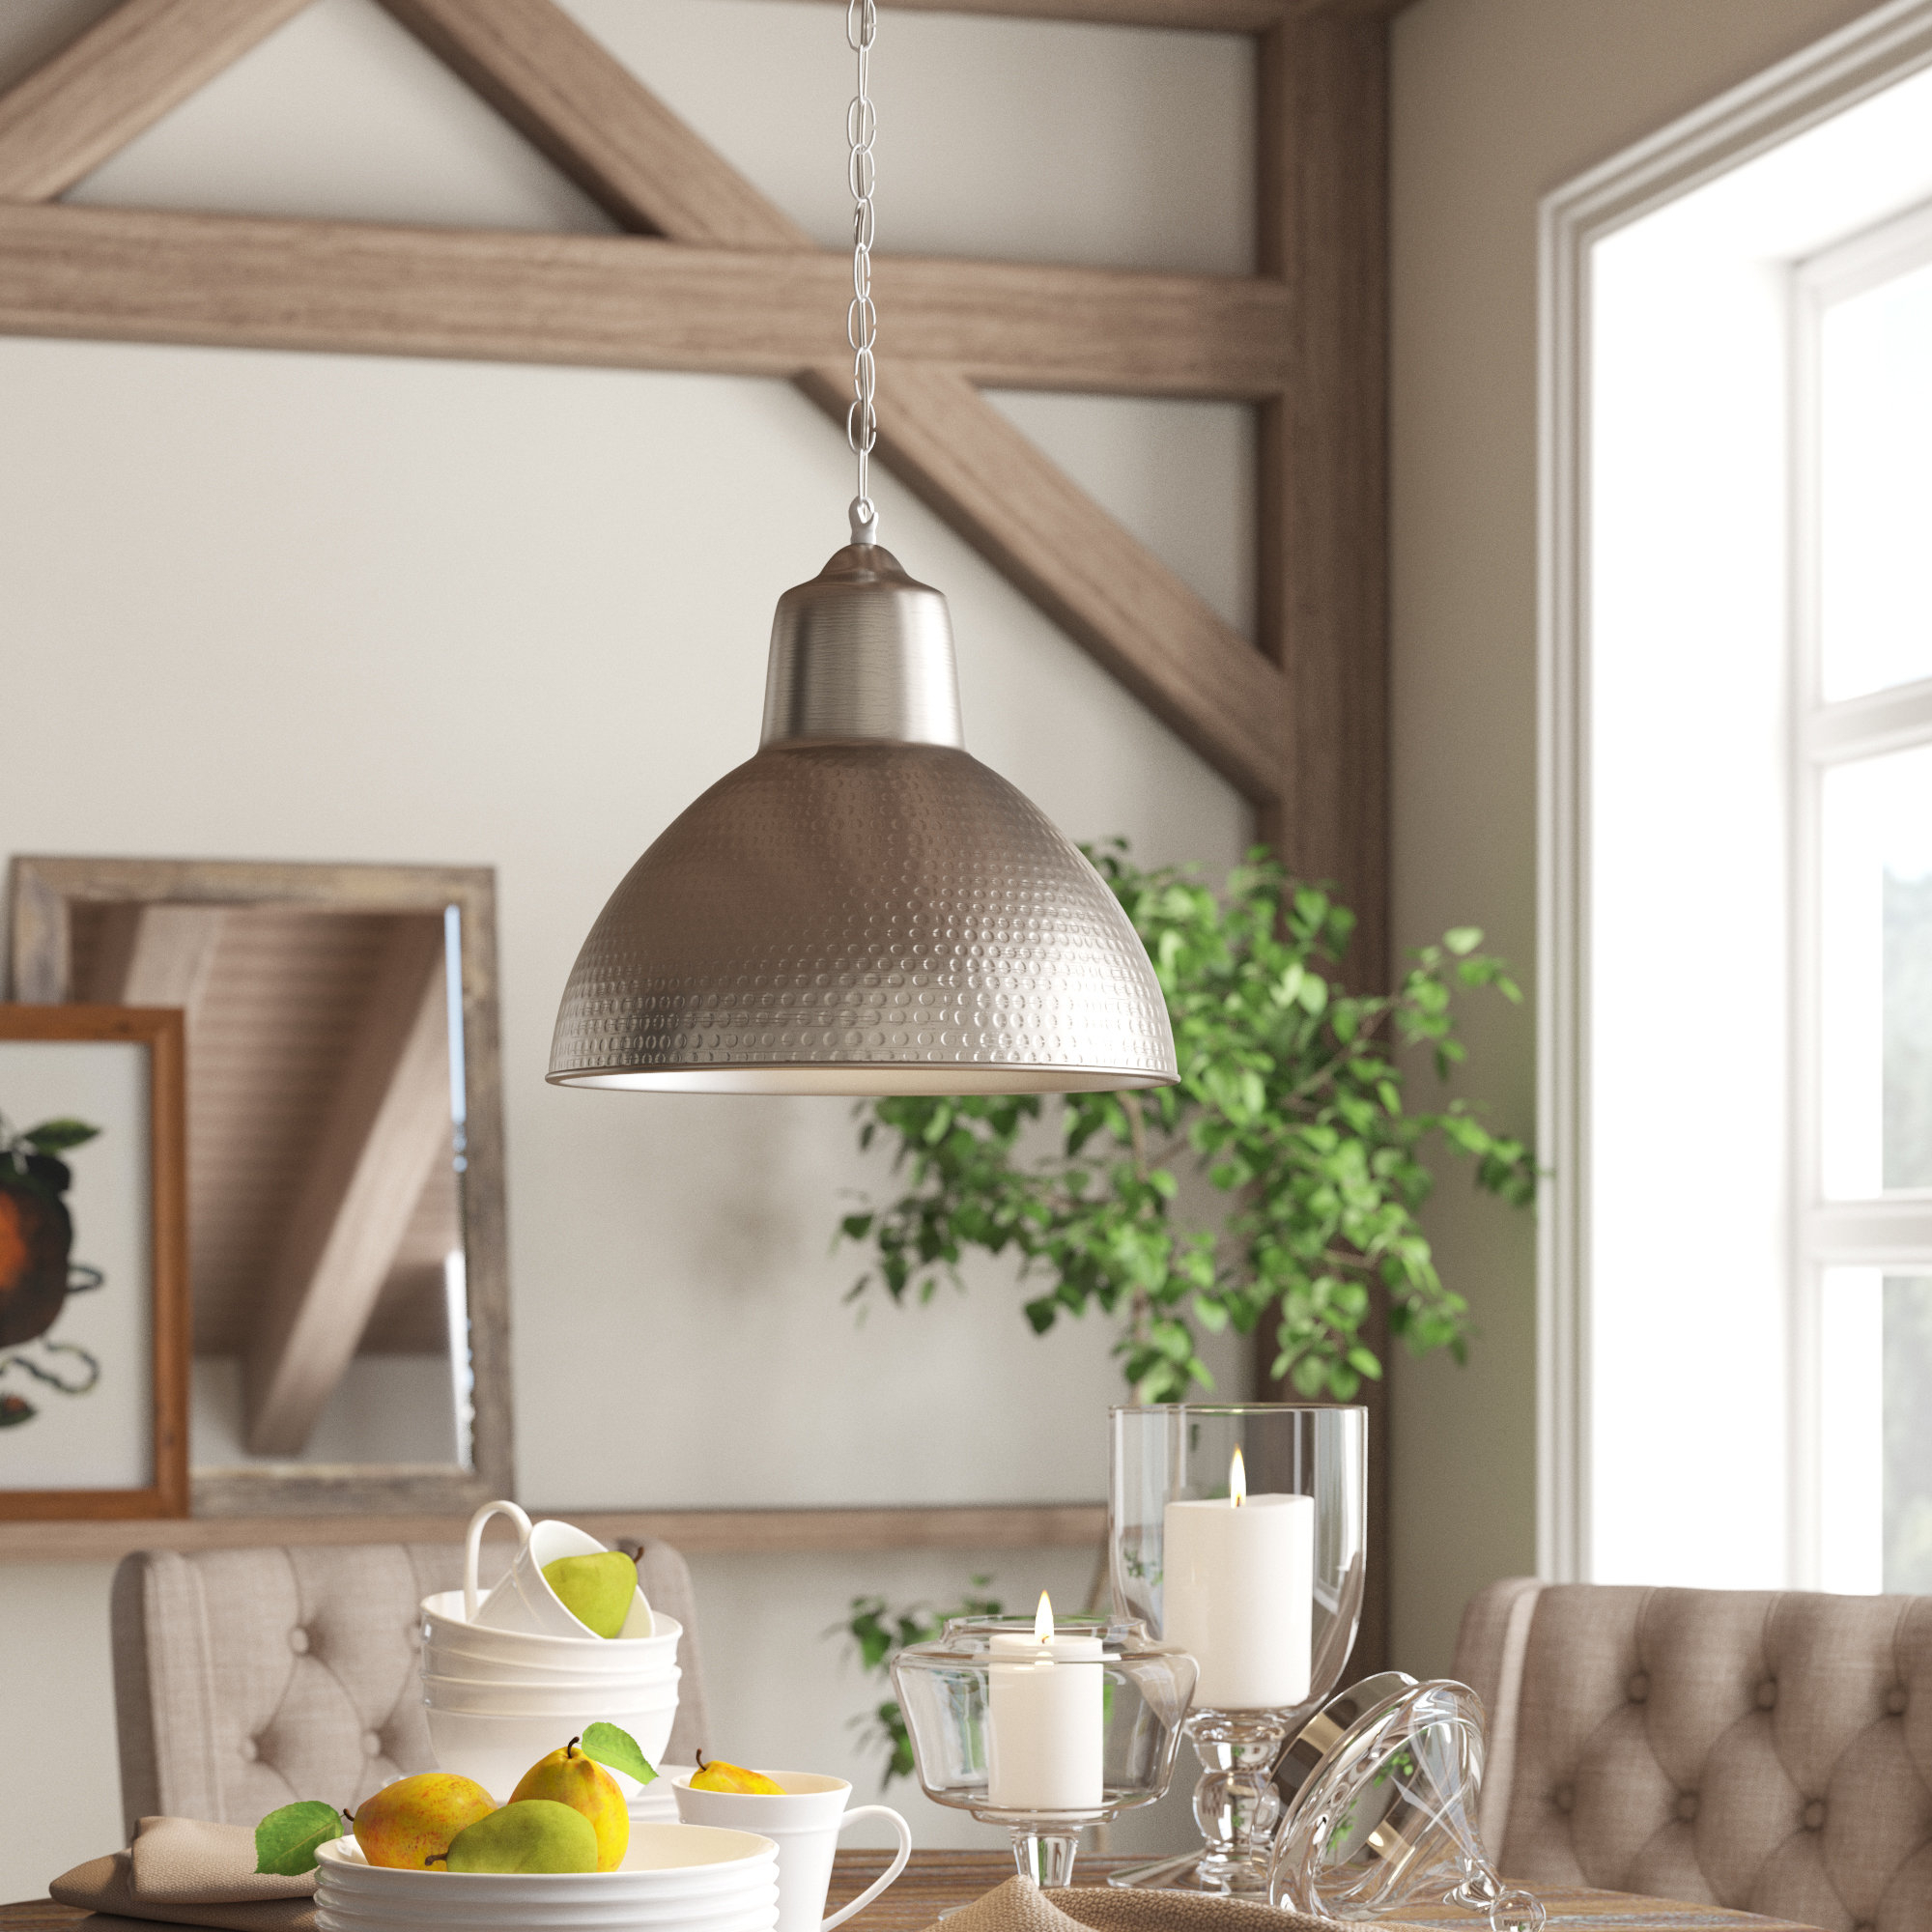 Nadeau 1 Light Single Cone Pendants Regarding Most Current Bainbridge 1 Light Single Dome Pendant (View 10 of 20)